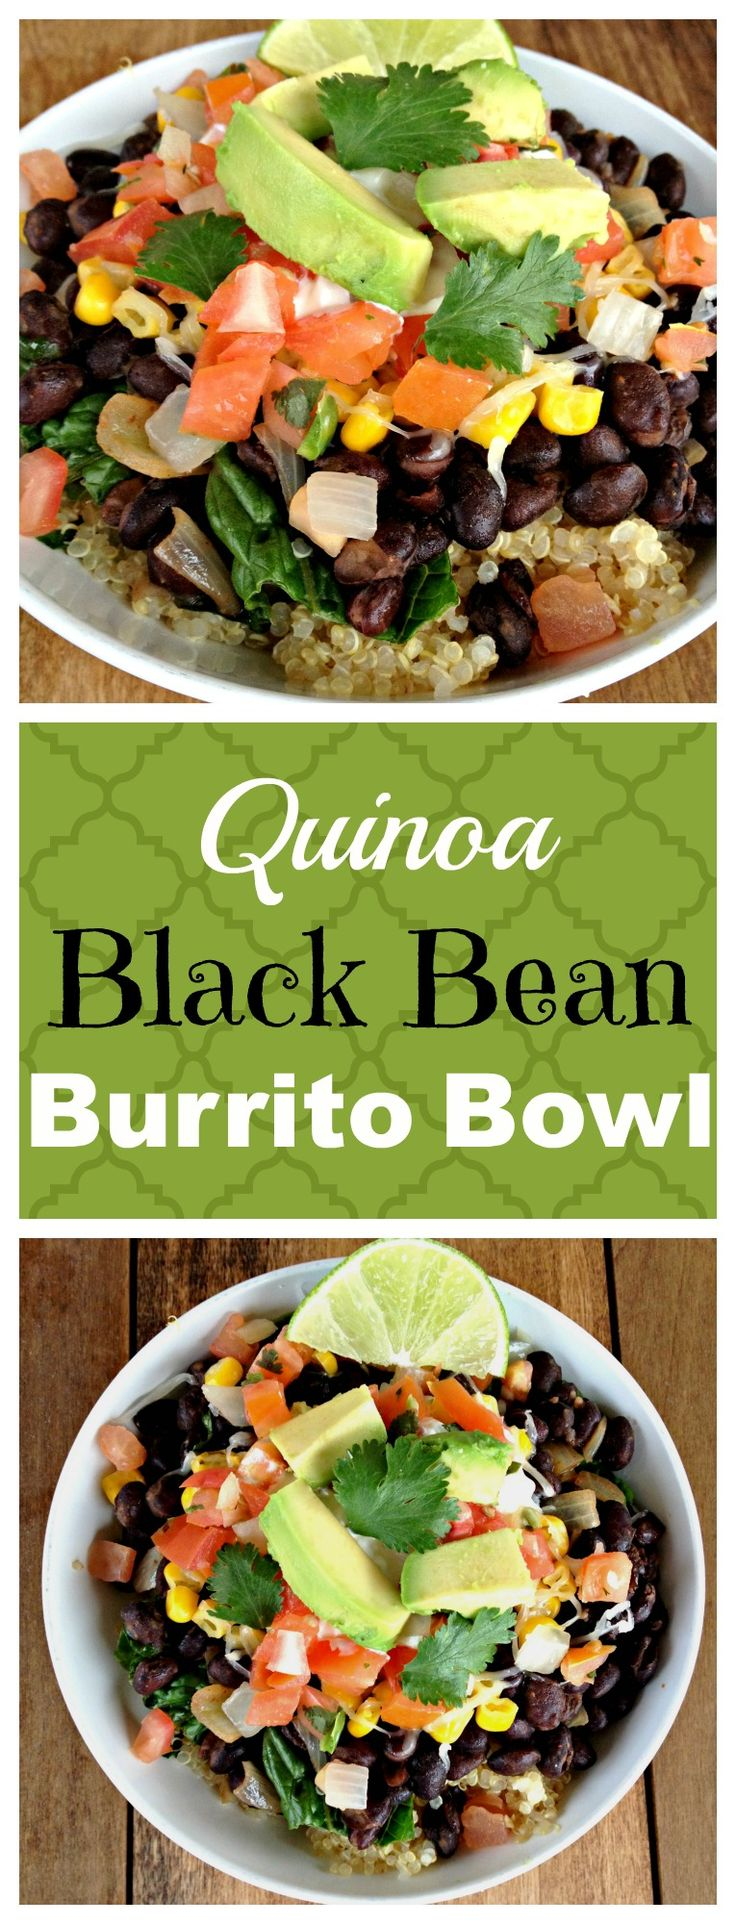 This quinoa black bean burrito bowl has the perfectly seasoned quinoa and beans. And you can add whatever toppings you want!